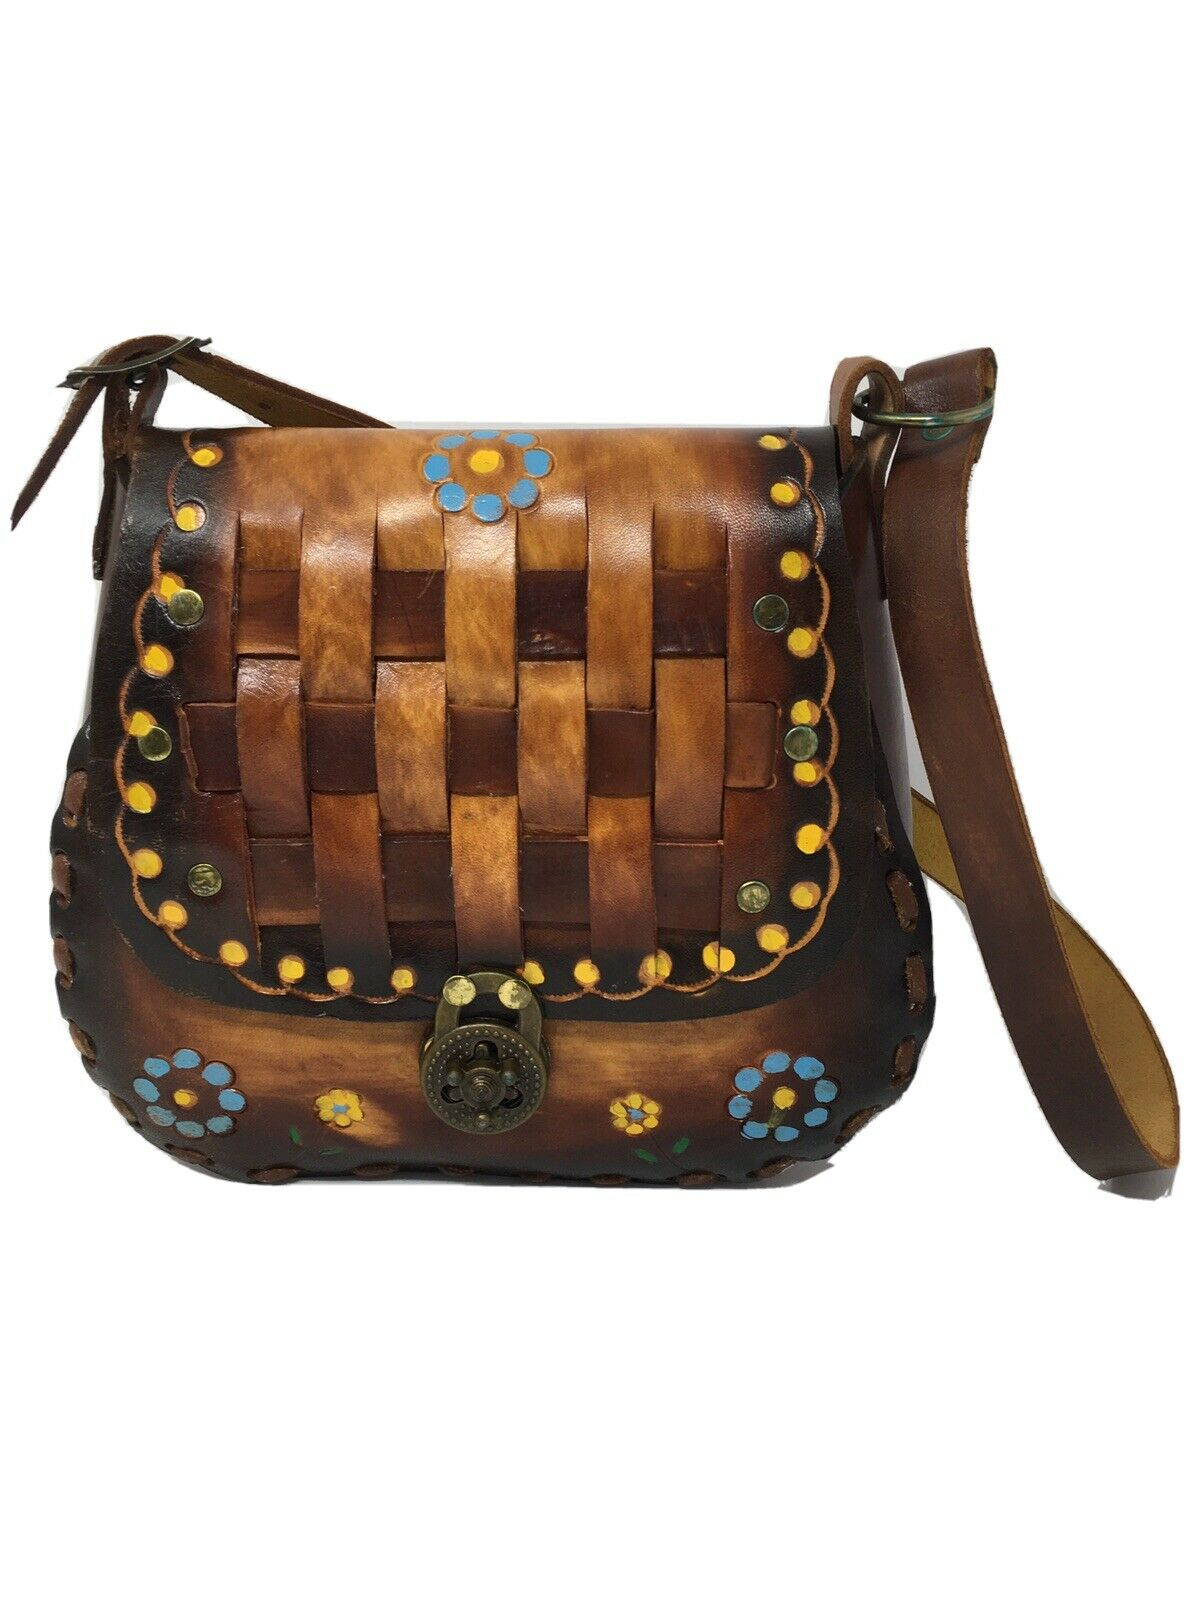 Hand-Painted Leather Purse